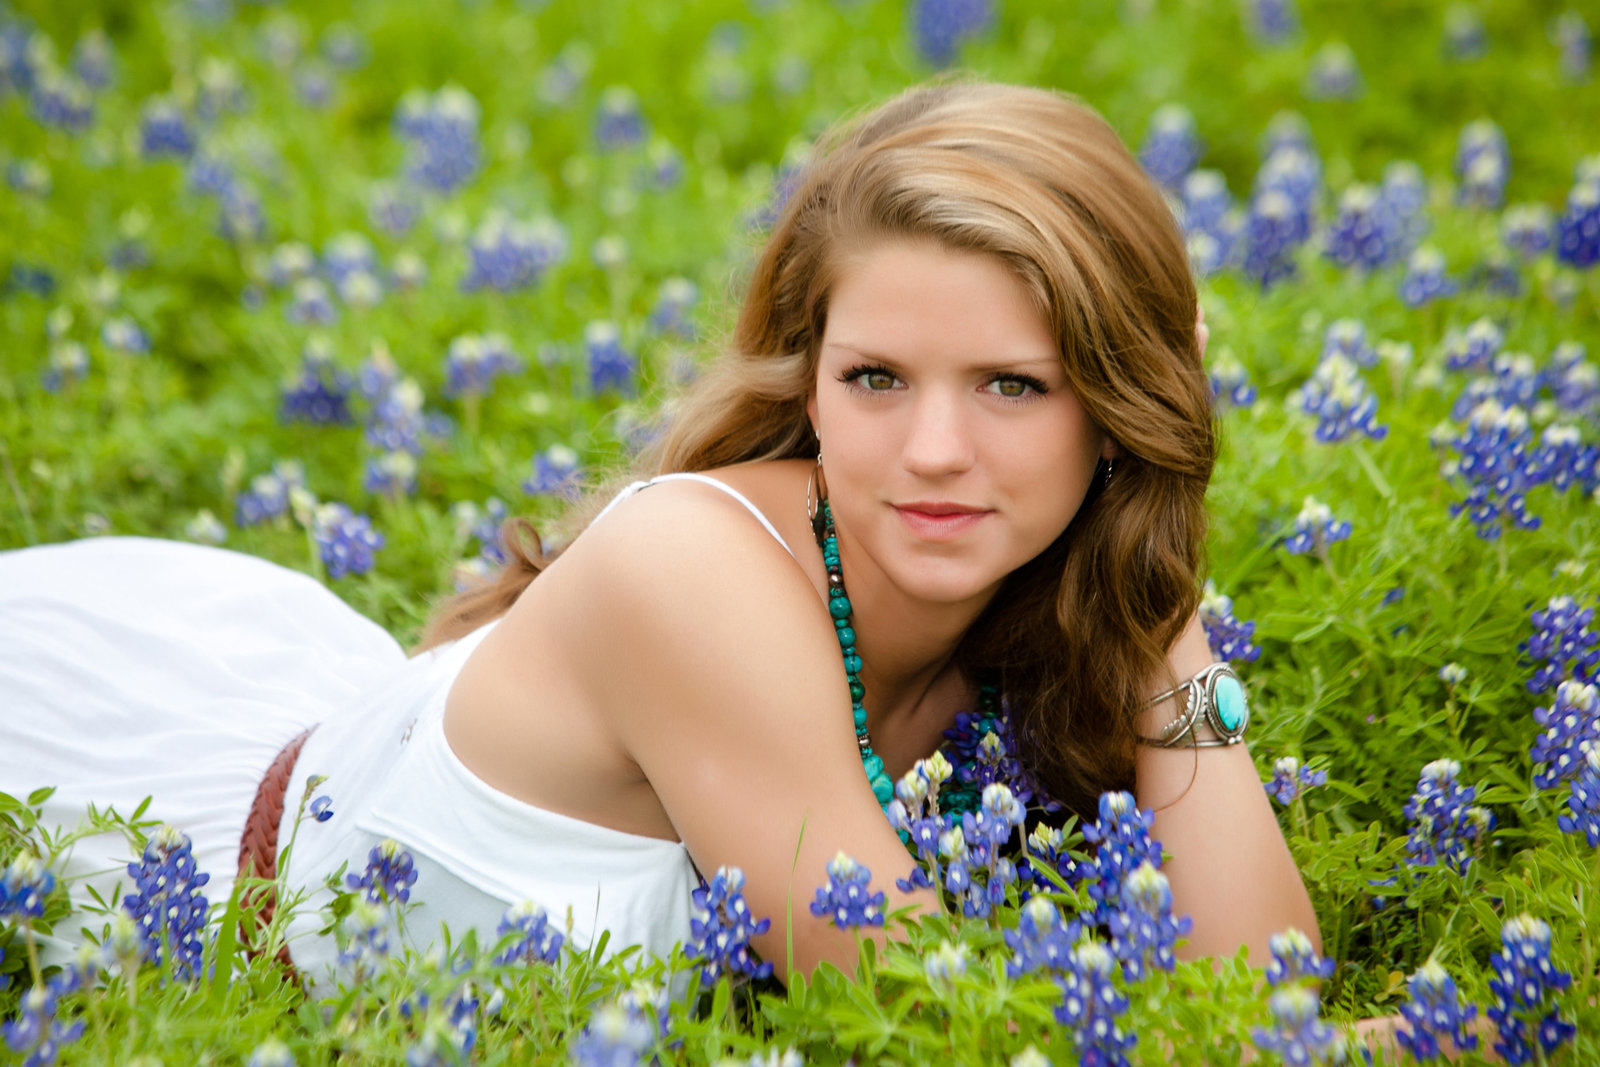 Austin High School Senior Photographer